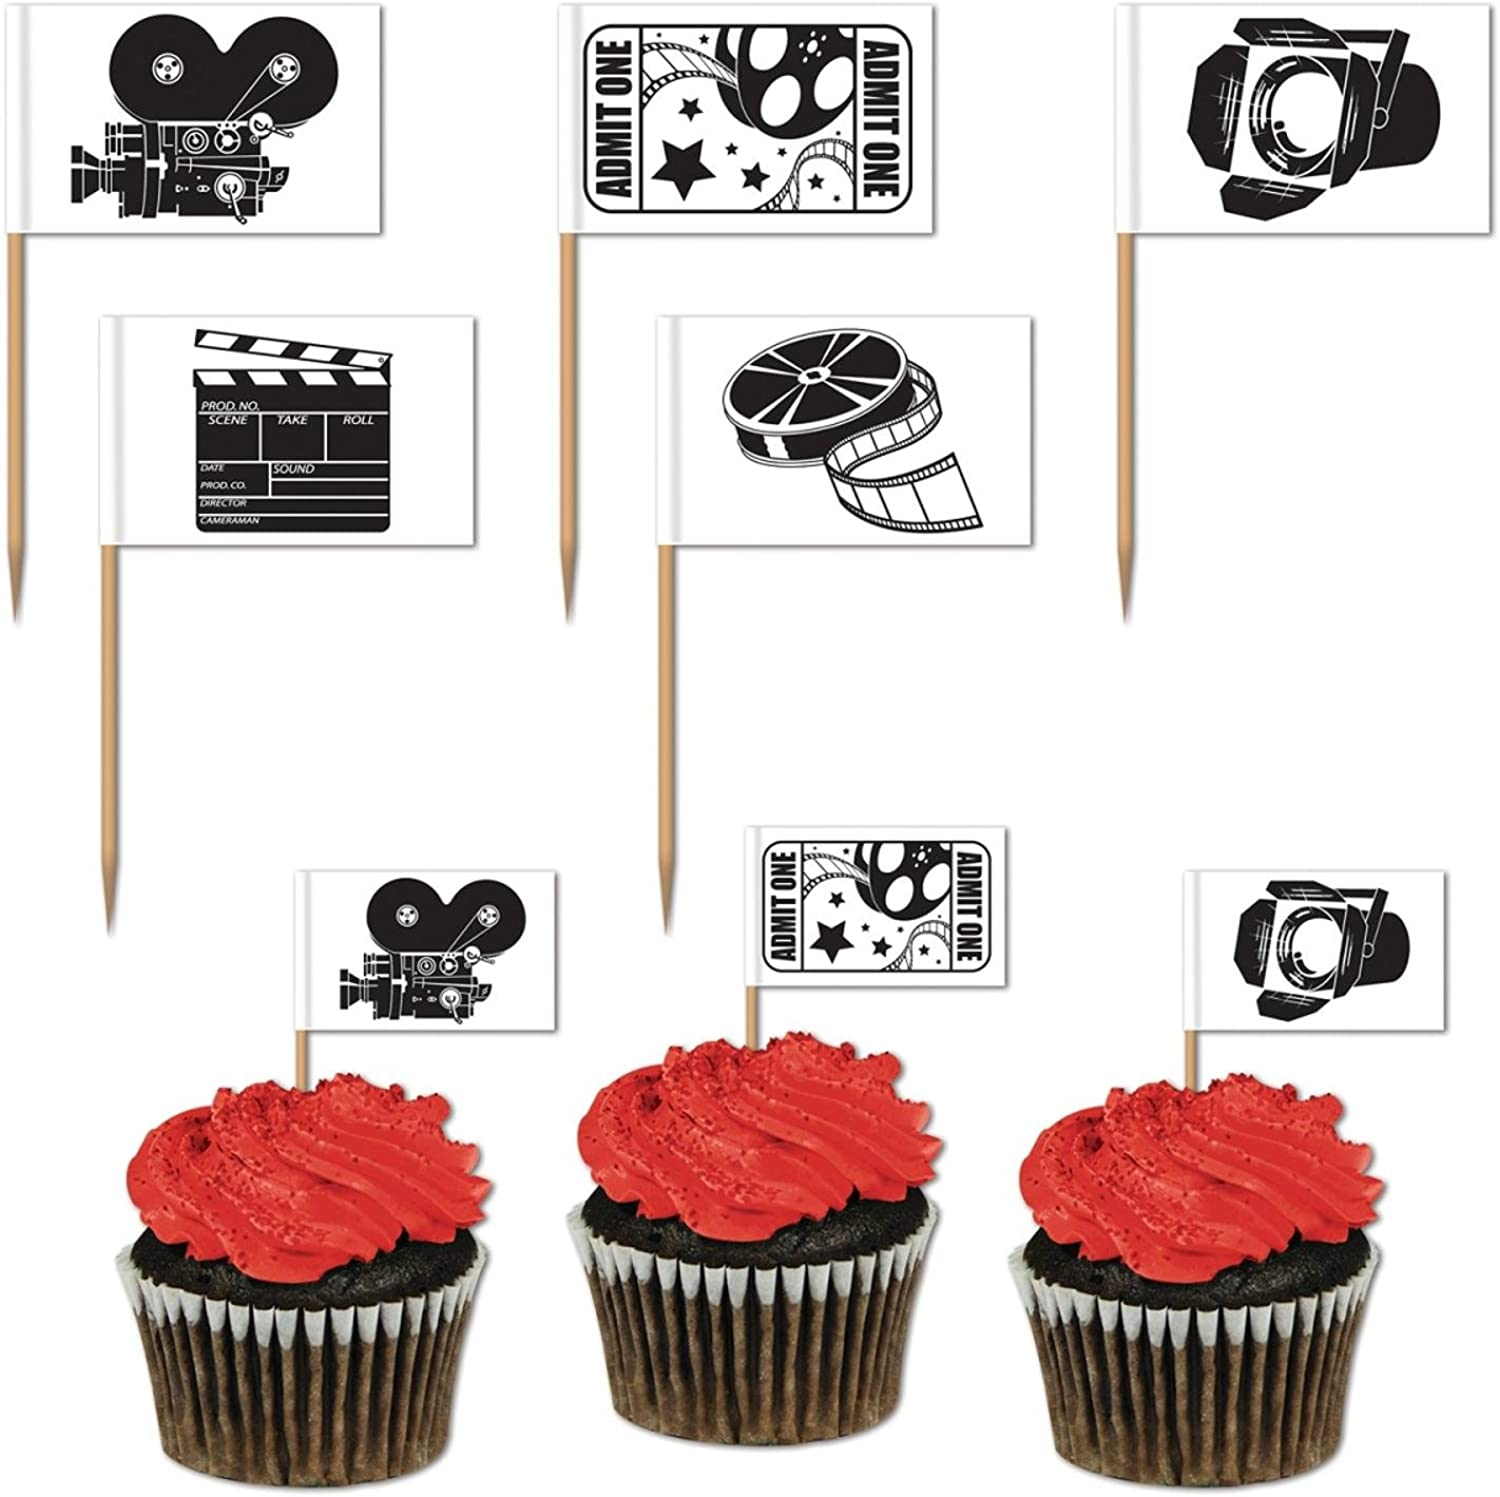 Club Pack of 600 Black and White Movie Set Themed Food, Drink or Decoration Party Picks 2.5